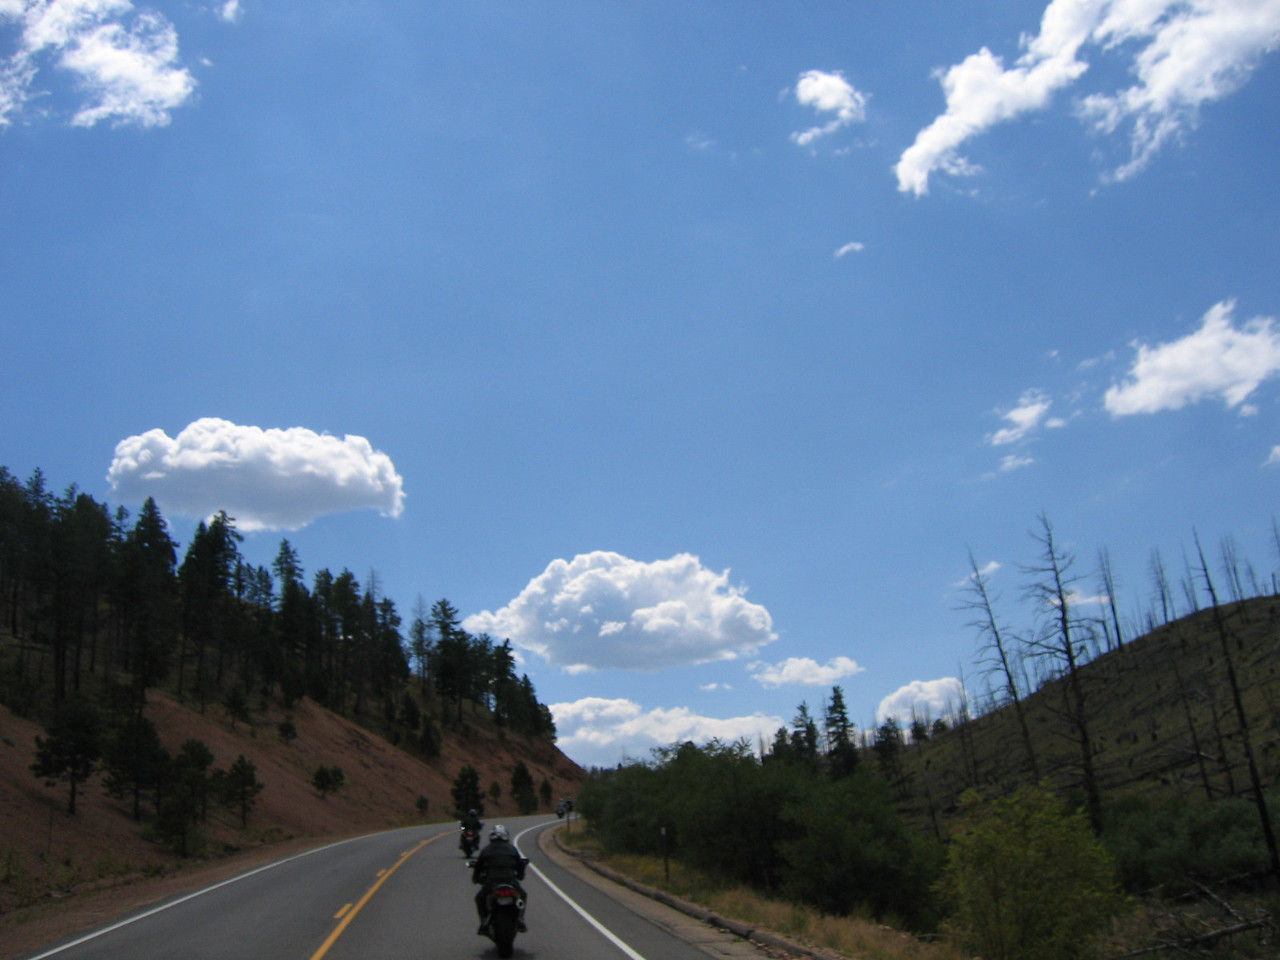 The road goes through several major forest-fire areas from the last decade.  It's a surreal landscape at times.